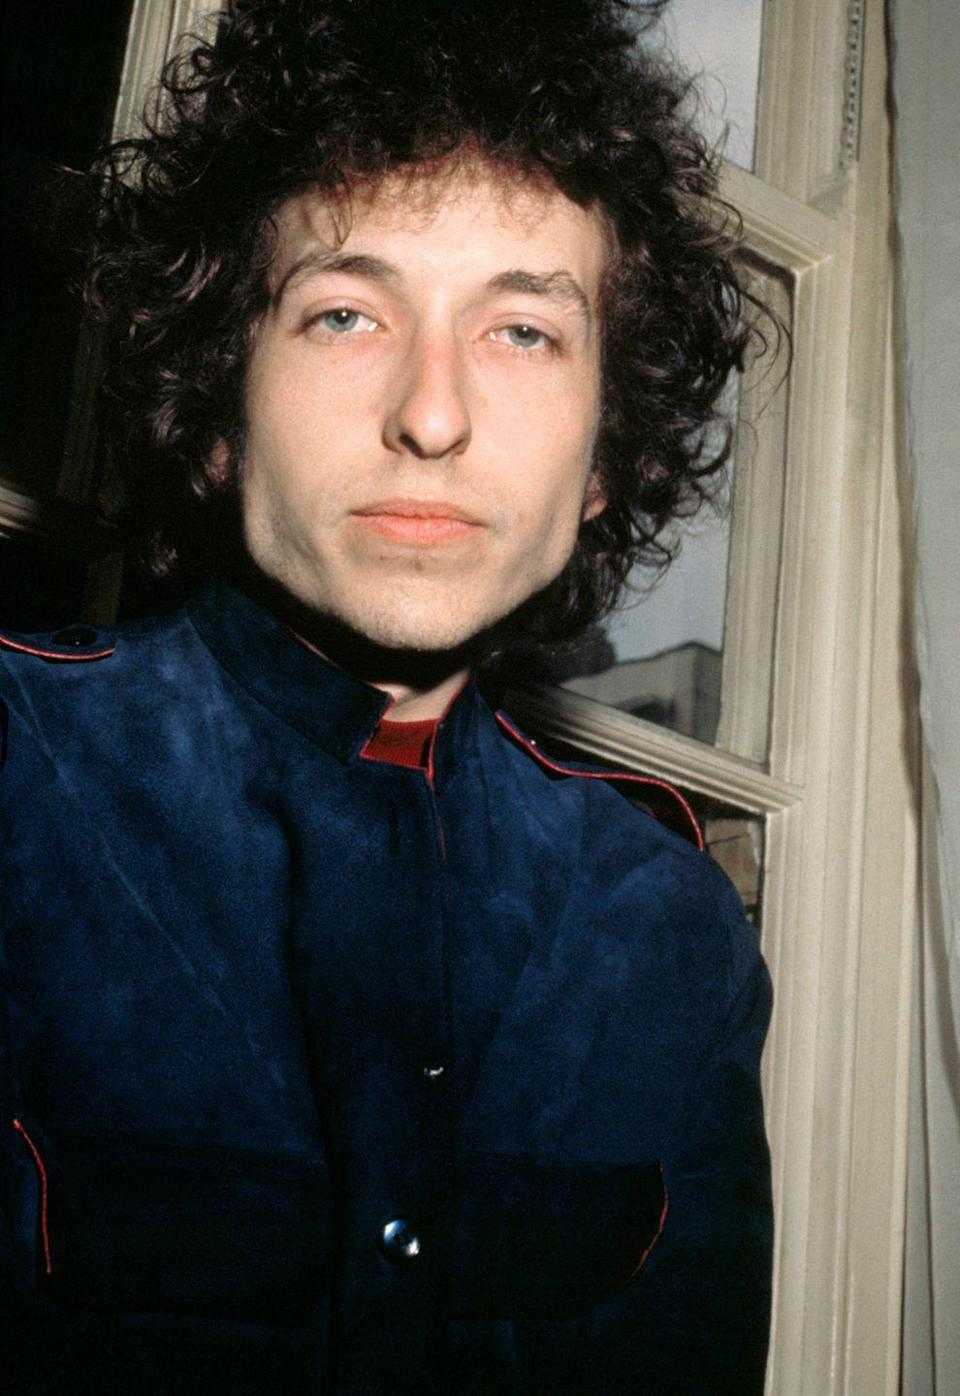 <p>Bob Dylan at the Mayfair Hotel in London, 1966.</p>